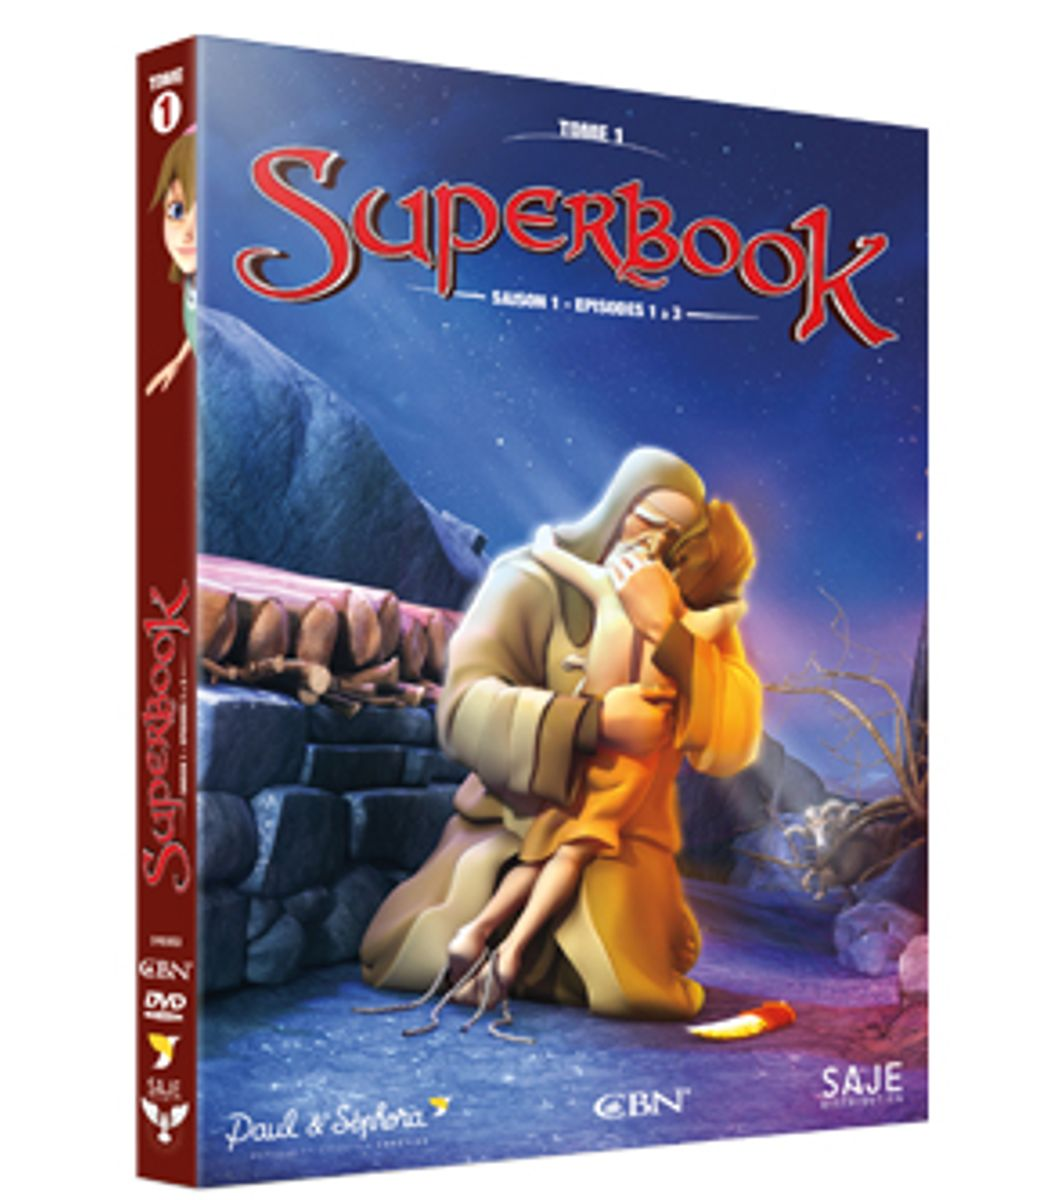 SUPERBOOK  TOME 1 - SAISON 1 - EPISODES 1 A 3 - DVD